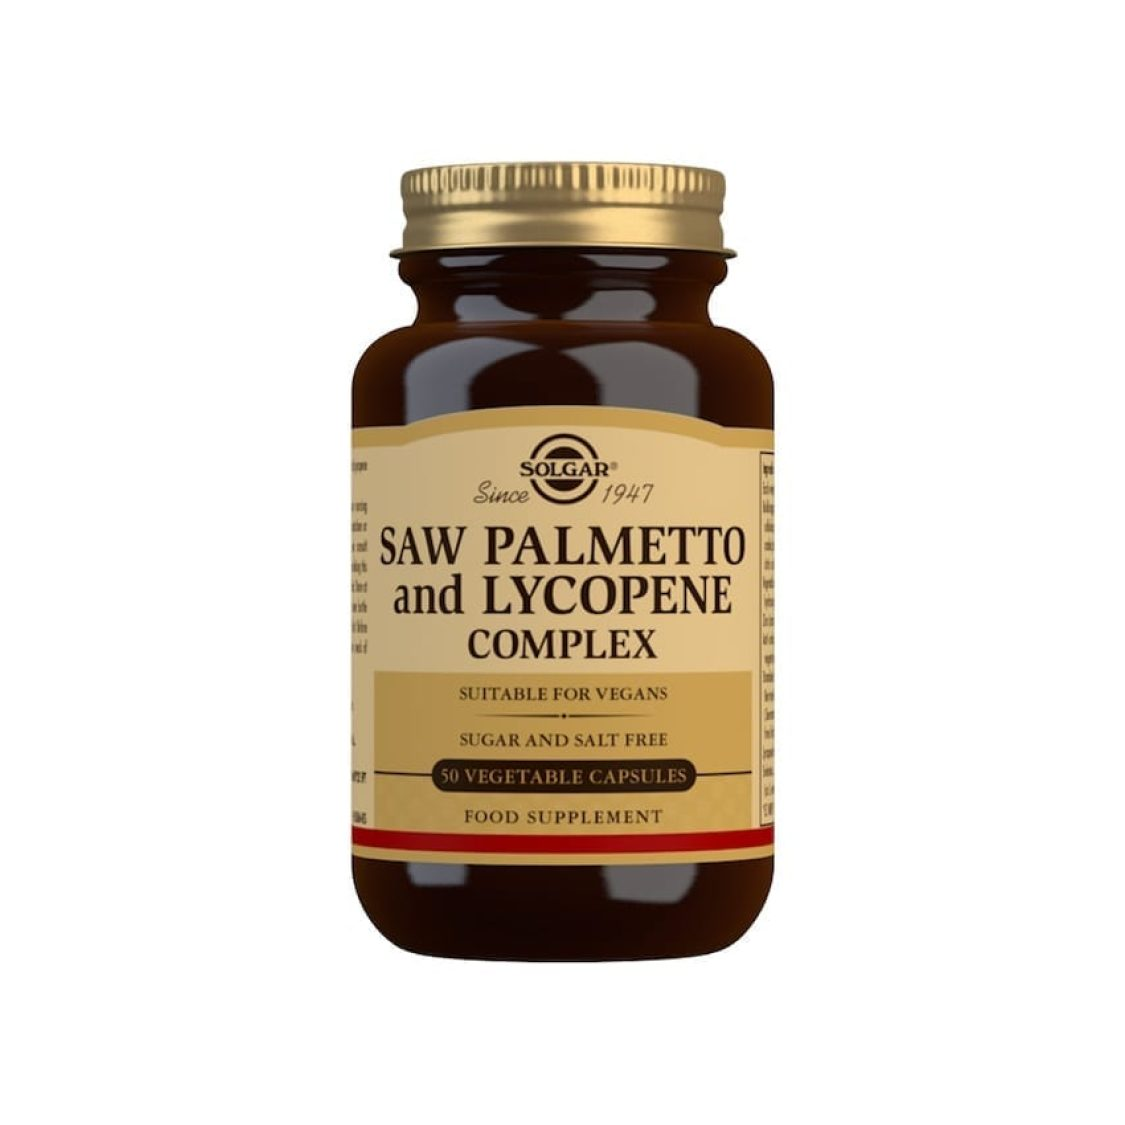 Solgar - Herbal Products - Saw Palmetto/Lycopene Complex - Size: 50